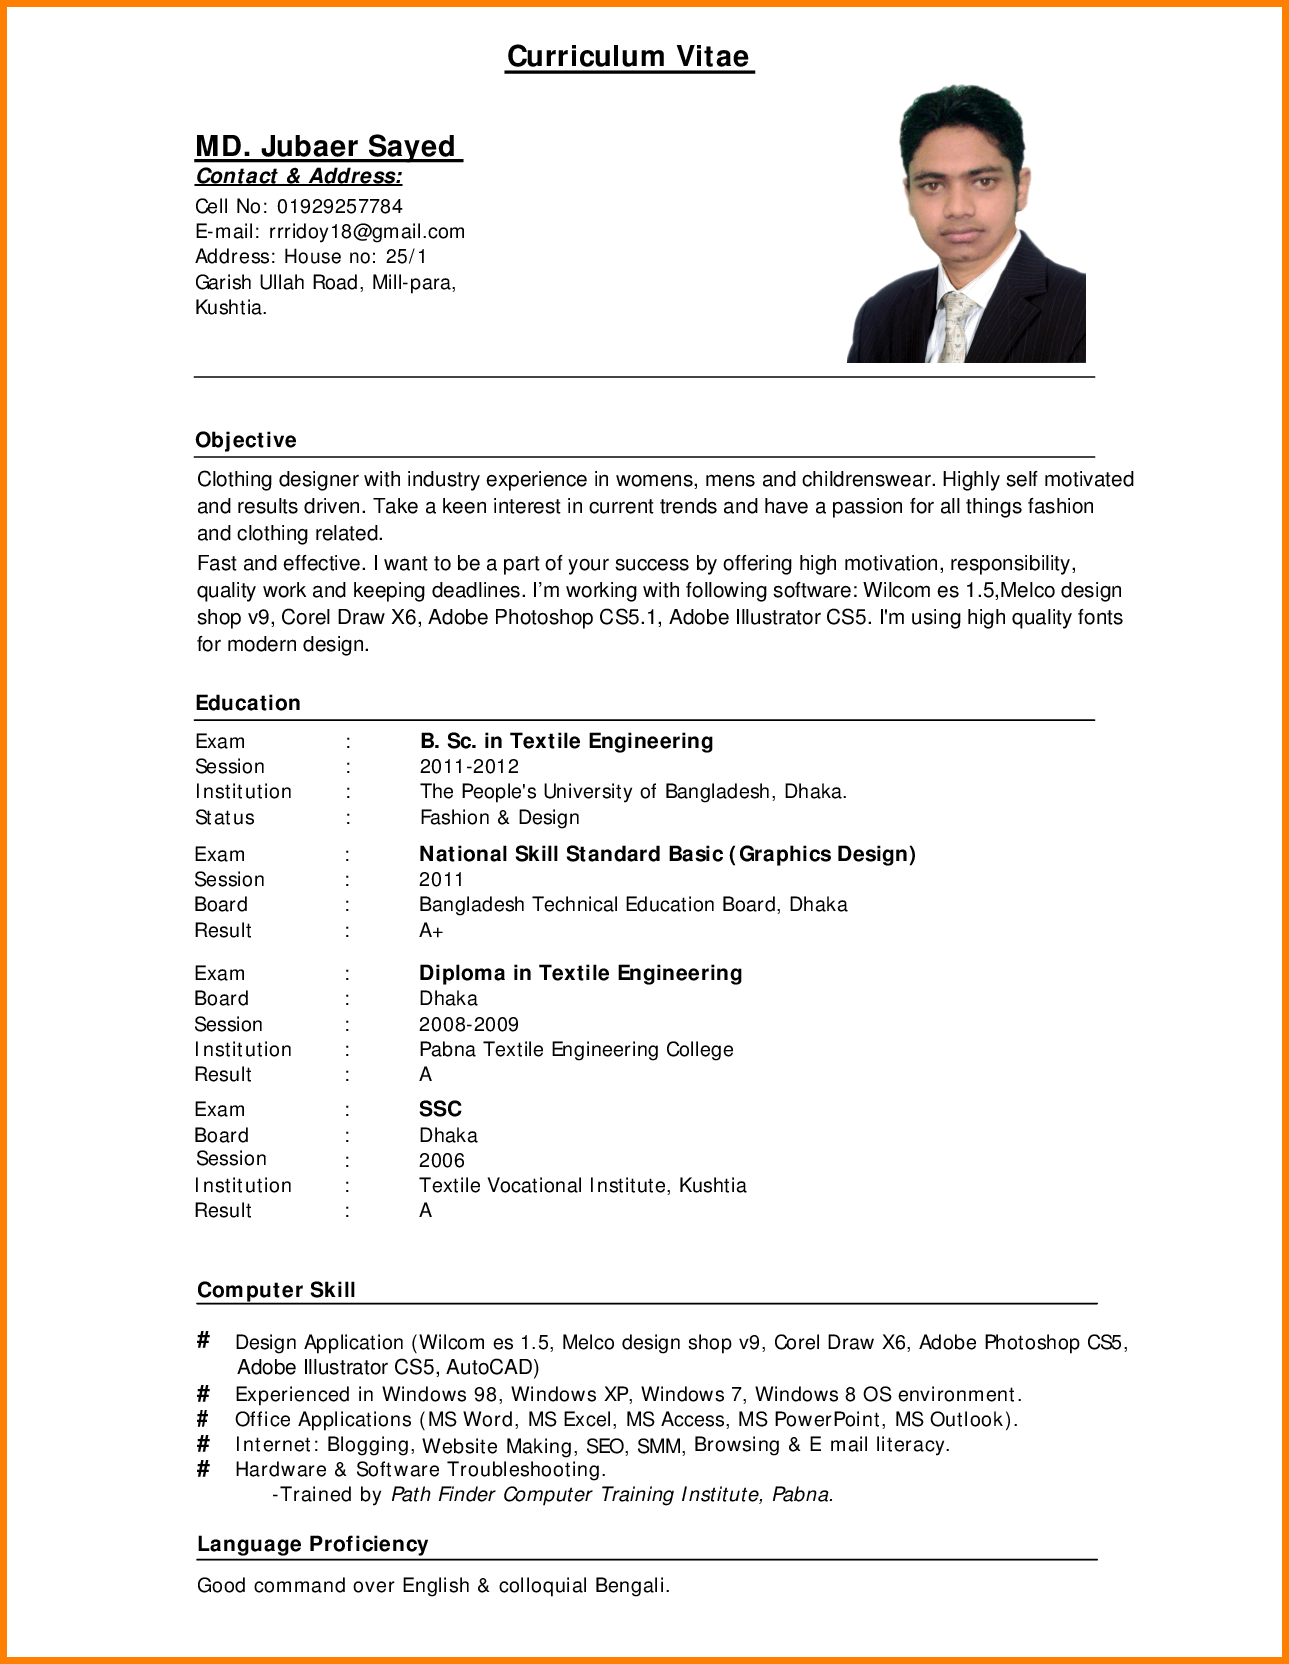 cv format example download - Koran.ayodhya.co